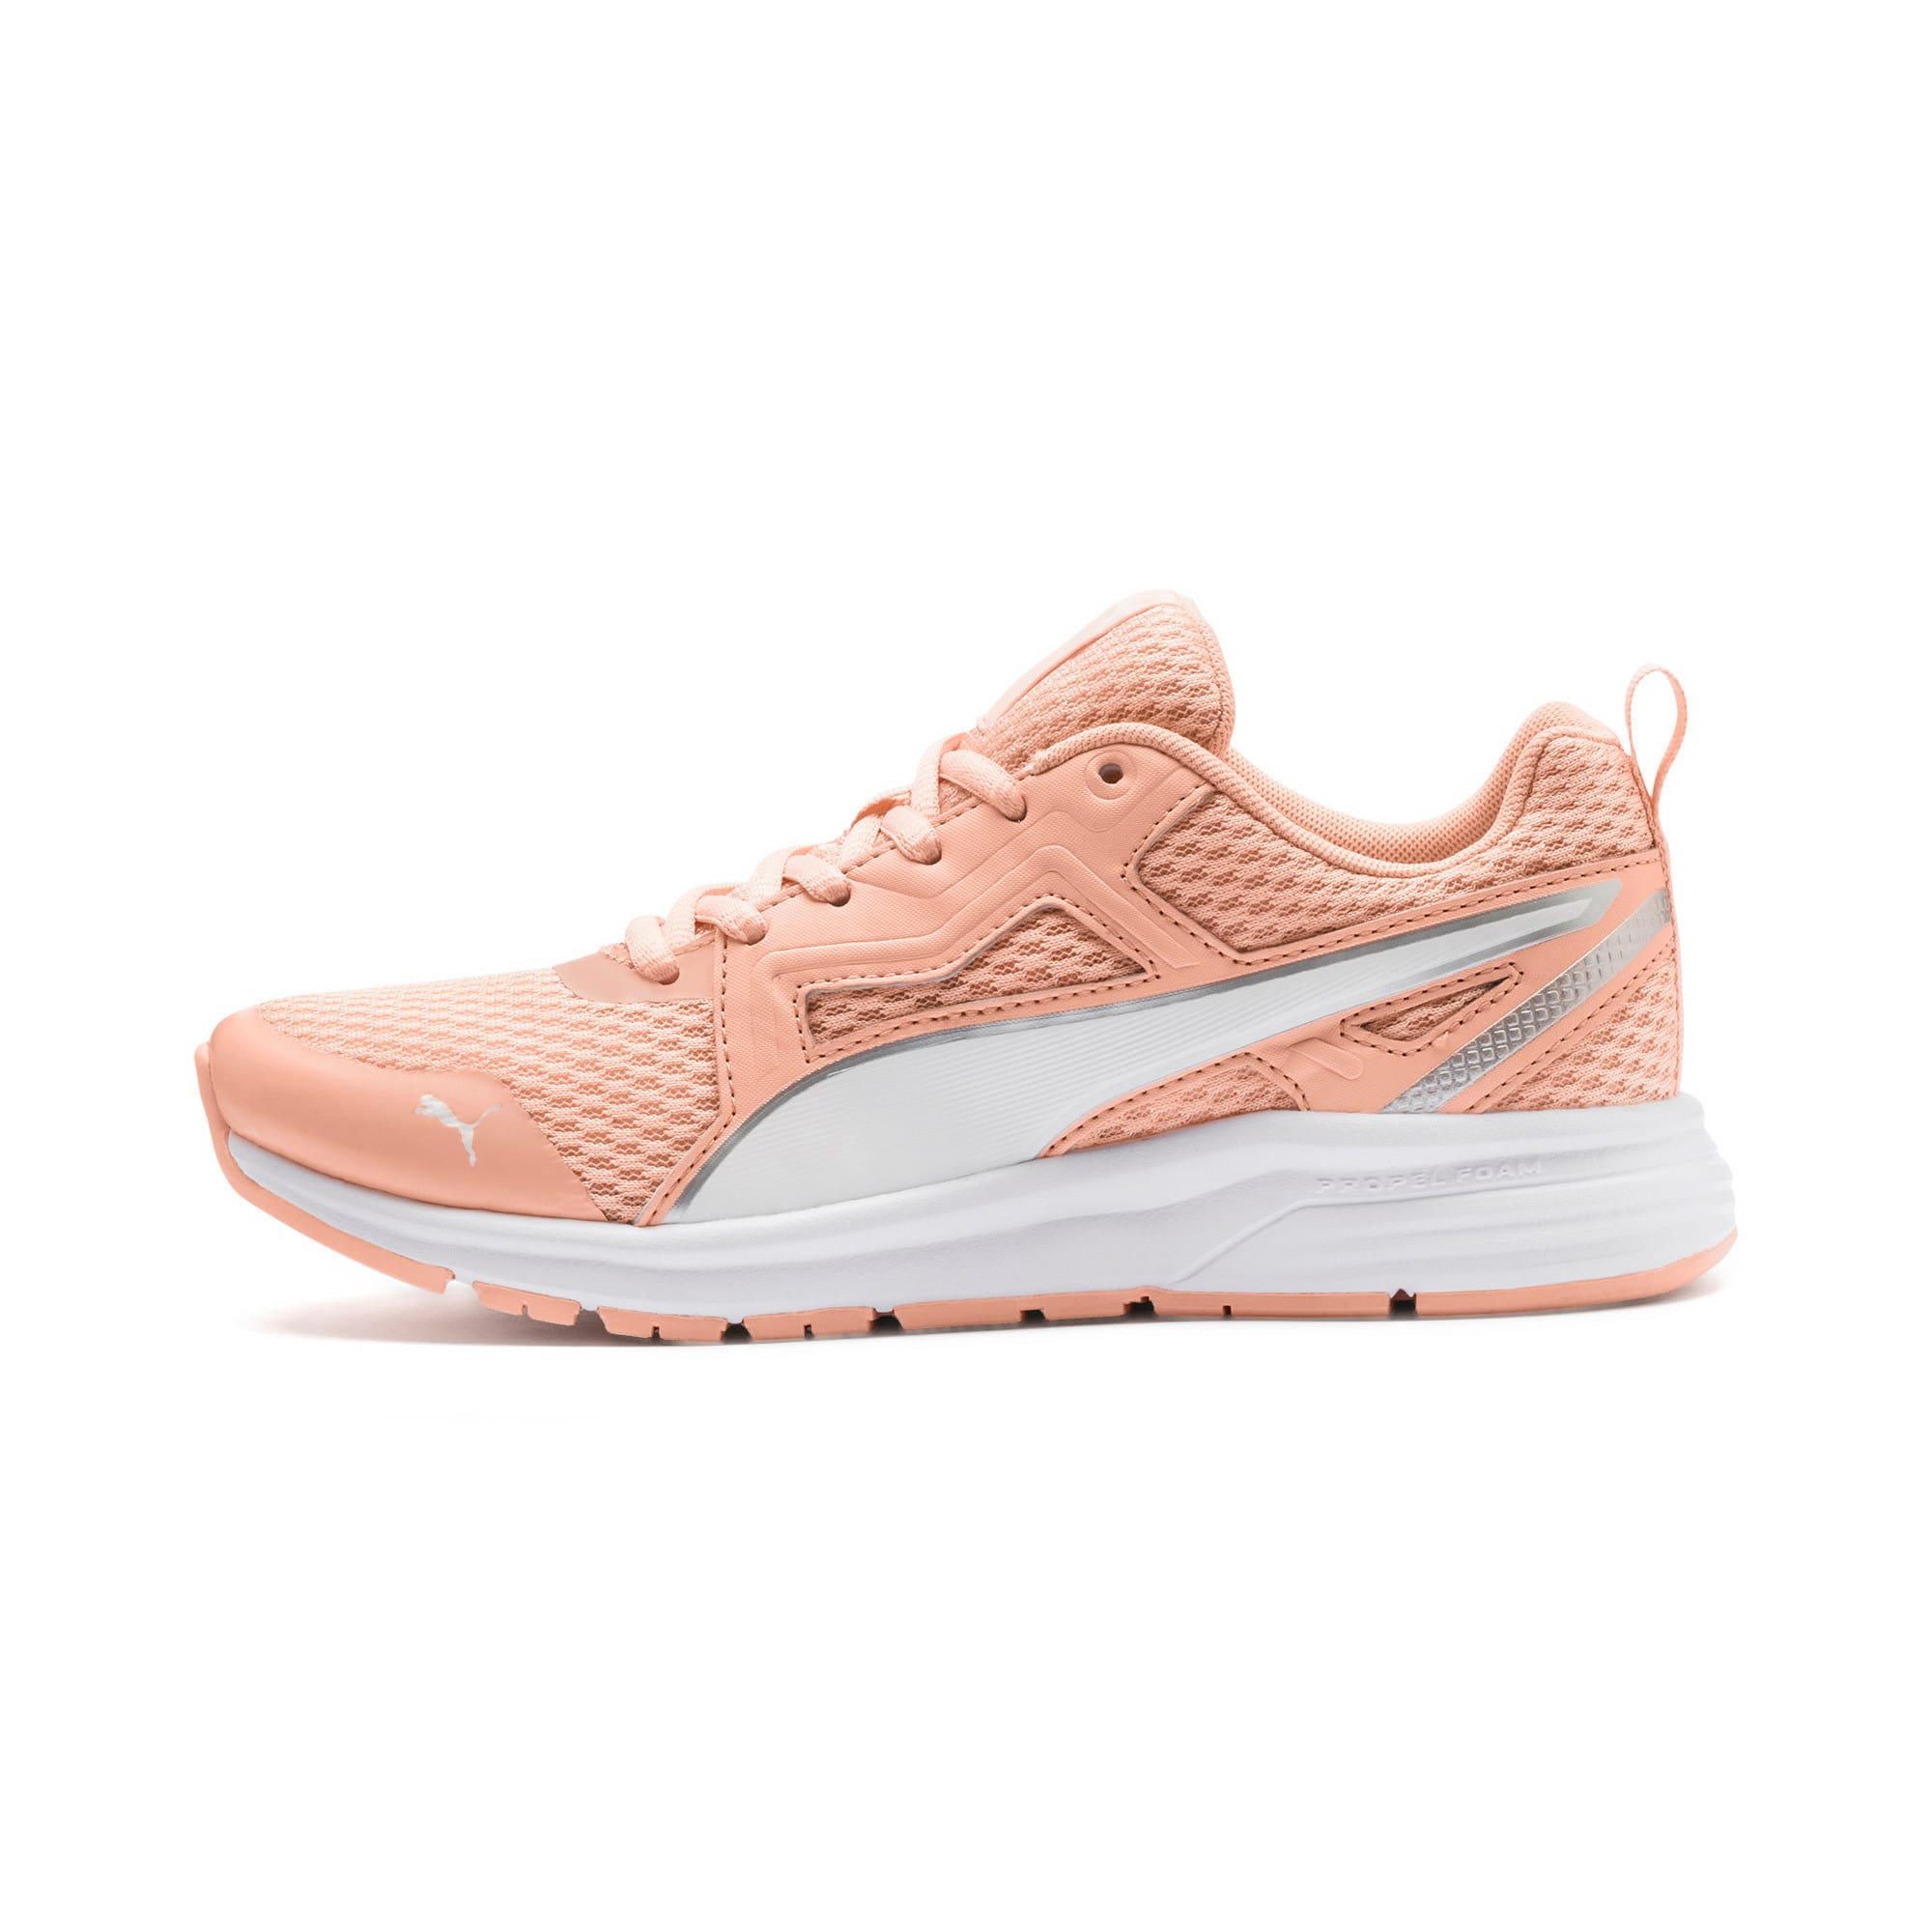 Thumbnail 1 of Pure Jogger Youth Trainers, Peach Parfait-White-Silver, medium